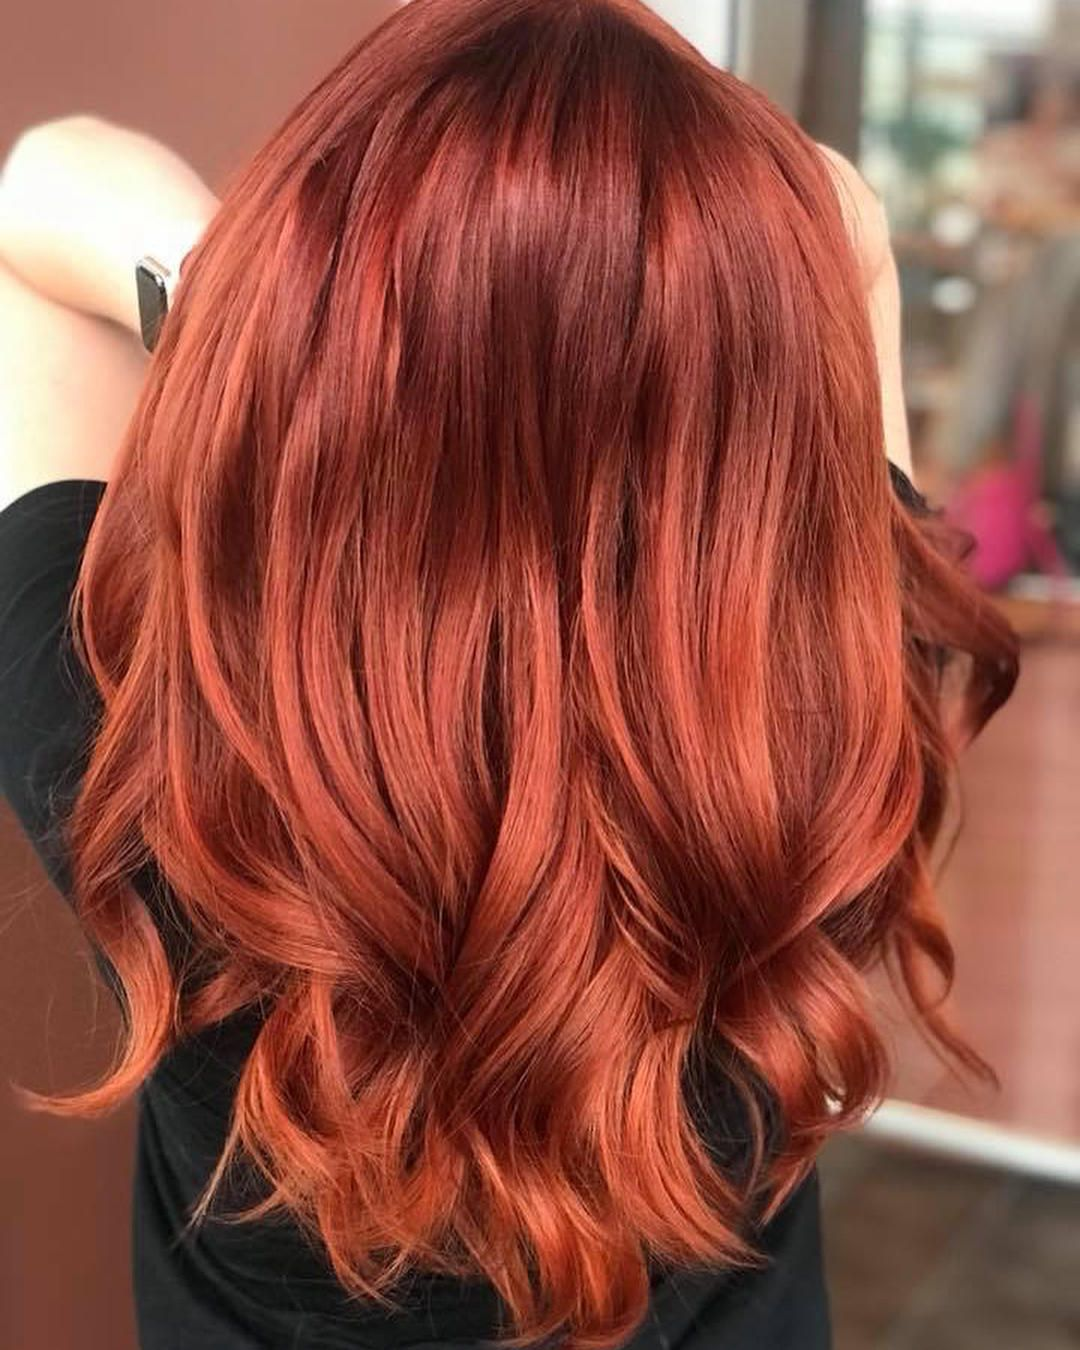 40 Hottest Red Hairstyles And Haircuts For 2021 New Season New Hair New You Hair Styles Short Red Hair Red Hair Color